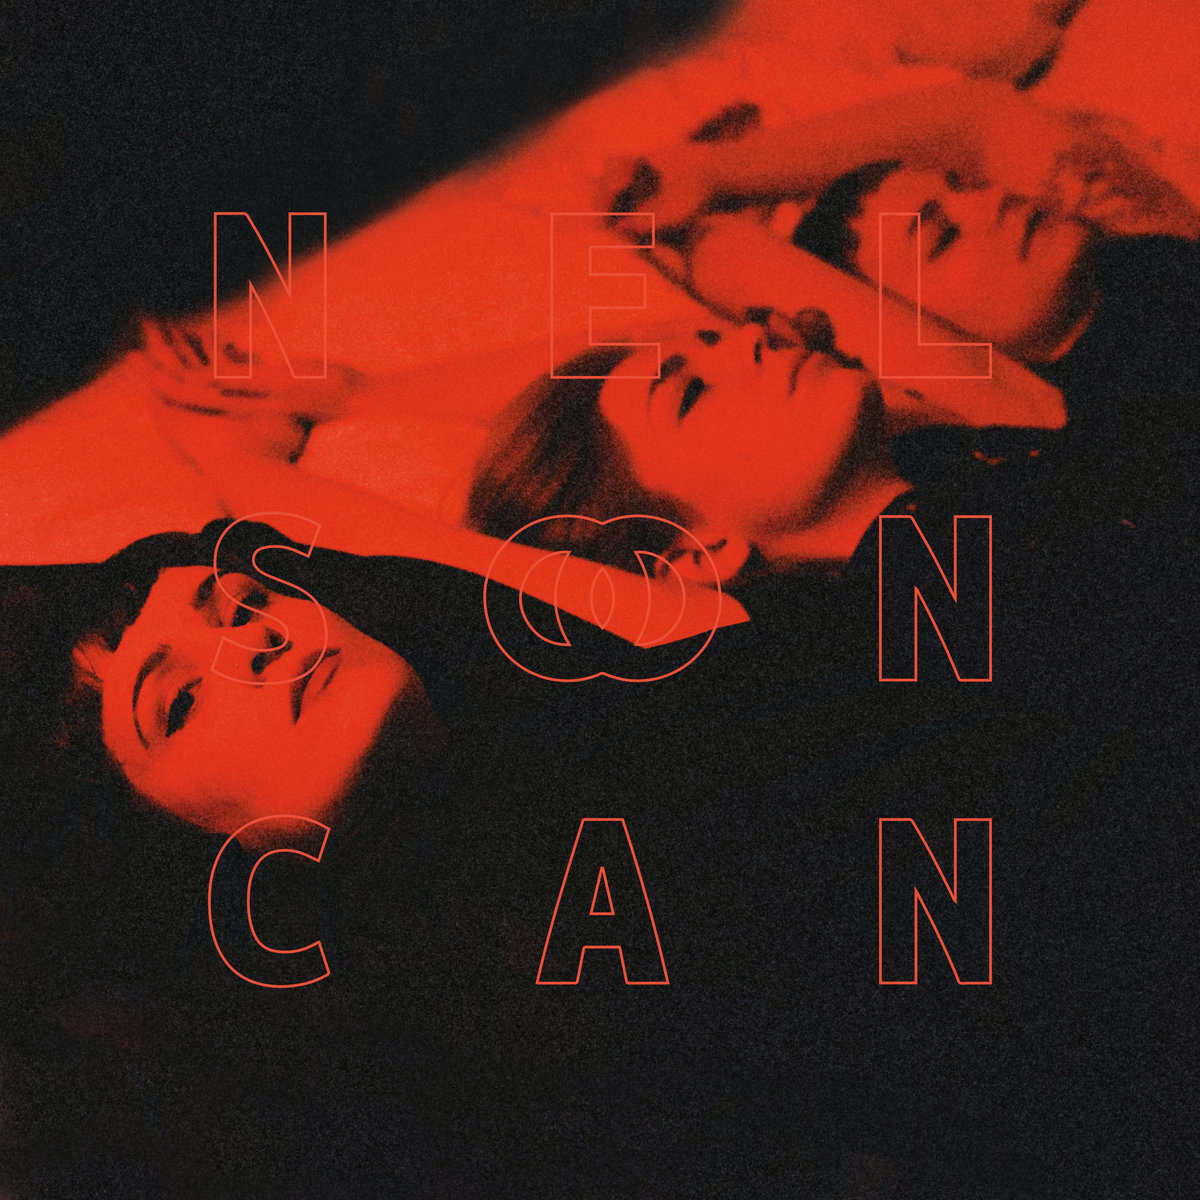 EP3 - Nelson Can - Musik - Alcopop! - 9956980435003 - 2019